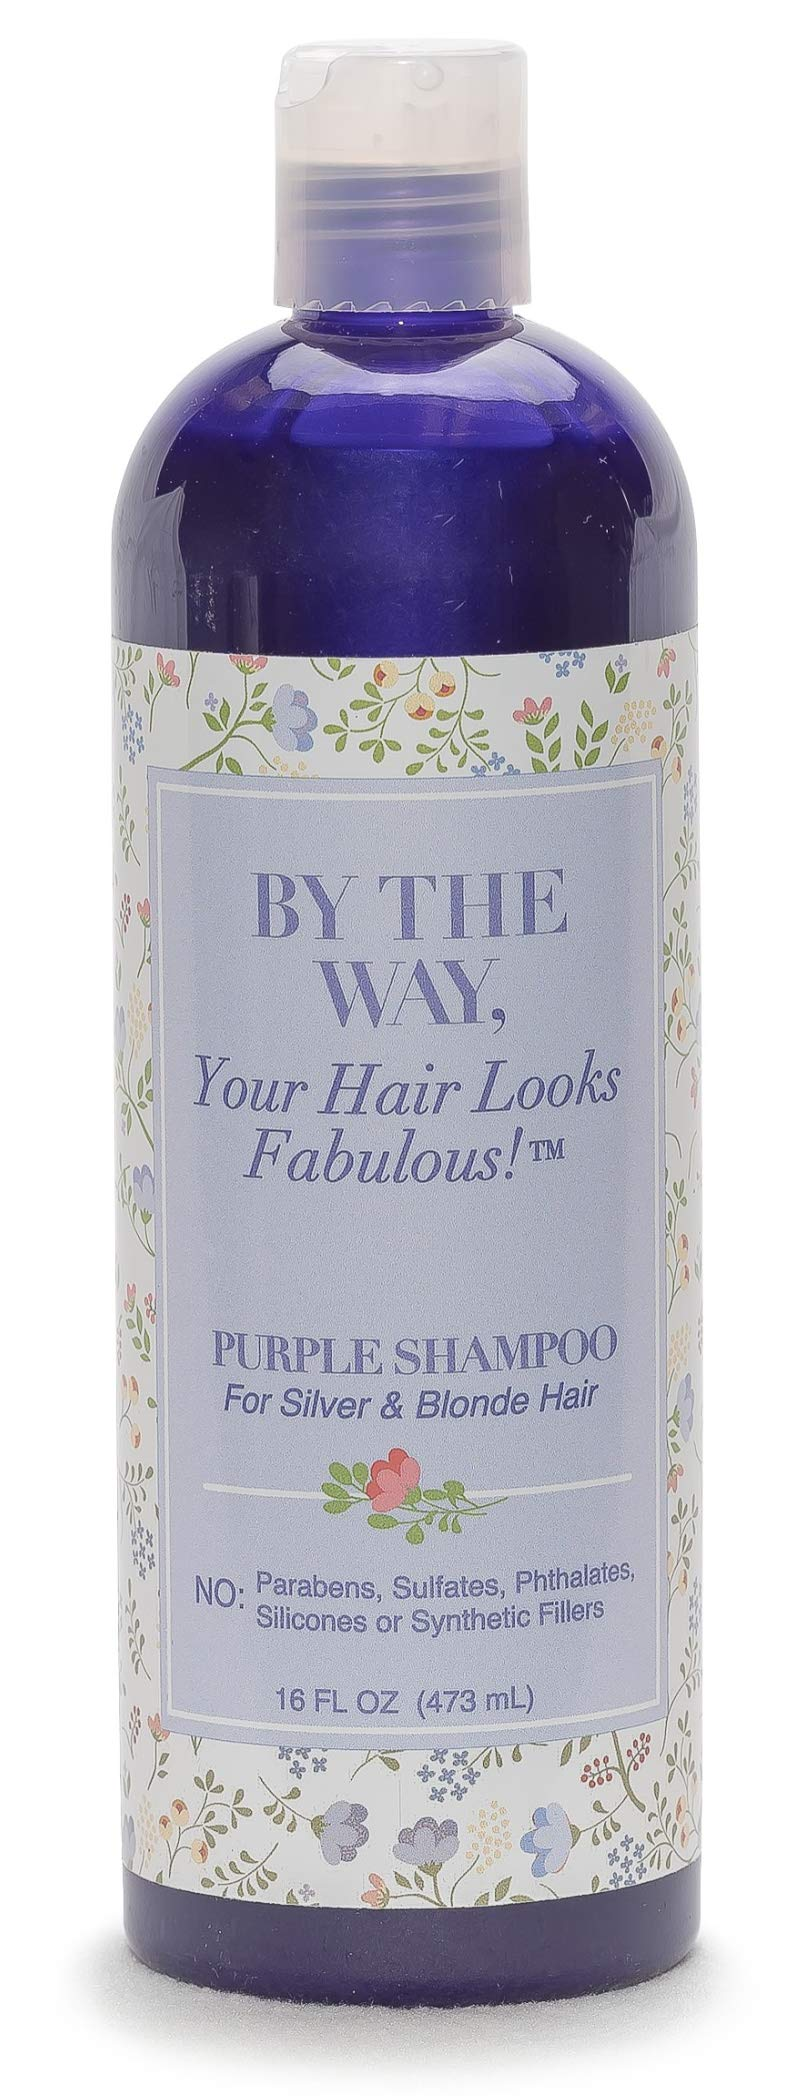 Purple Shampoo by The BTW Co. for Silver, Gray and Blonde Hair: Brighten and Remove Yellowing or Brassy Tones with No Sulfates, No Parabens - 16 ounce - Cruelty-Free for Color-Treated and Natural Hair by BY THE WAY, Your Hair Looks Fabulous!